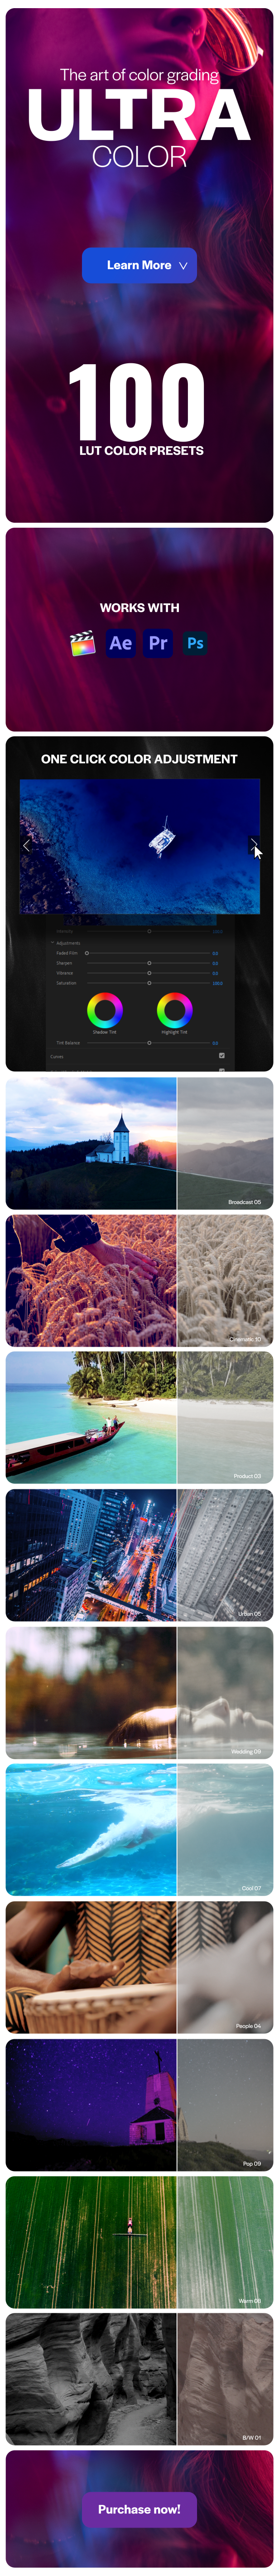 Ultra Color | LUTs pack for Any Software - 2